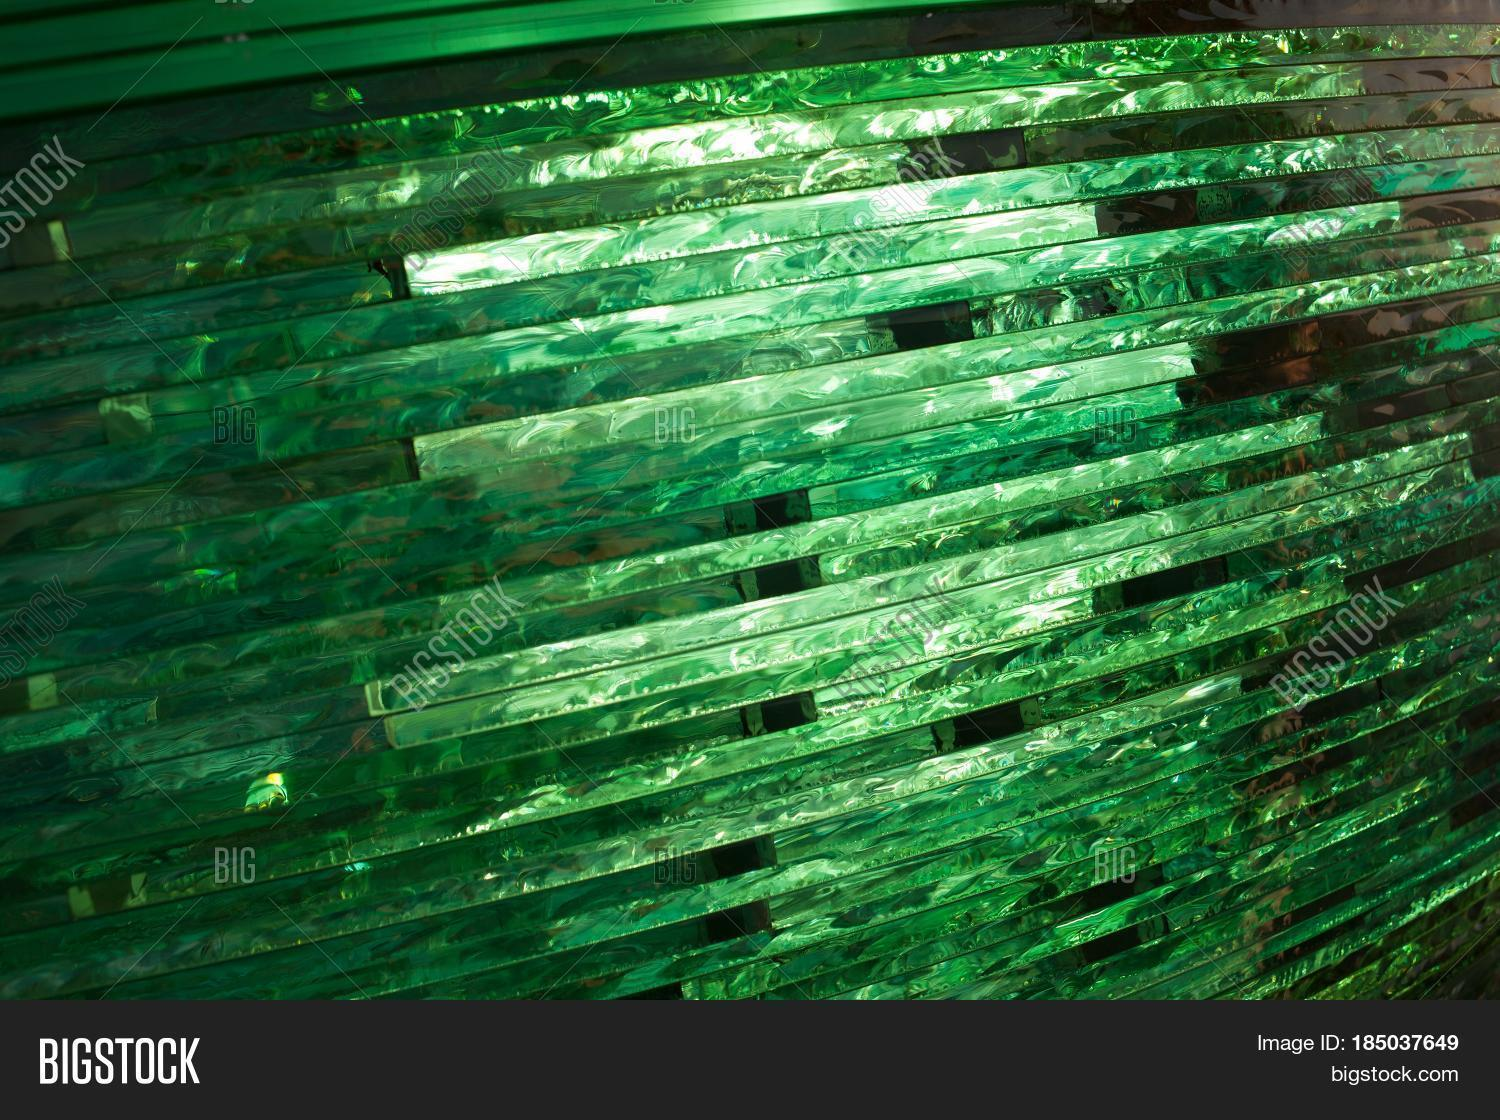 8e37a449255 Abstract background. Mosaic squares of different shades. Design desktop  wallpaper or background. Modern decorative texture. Colorful glass glossy  ...